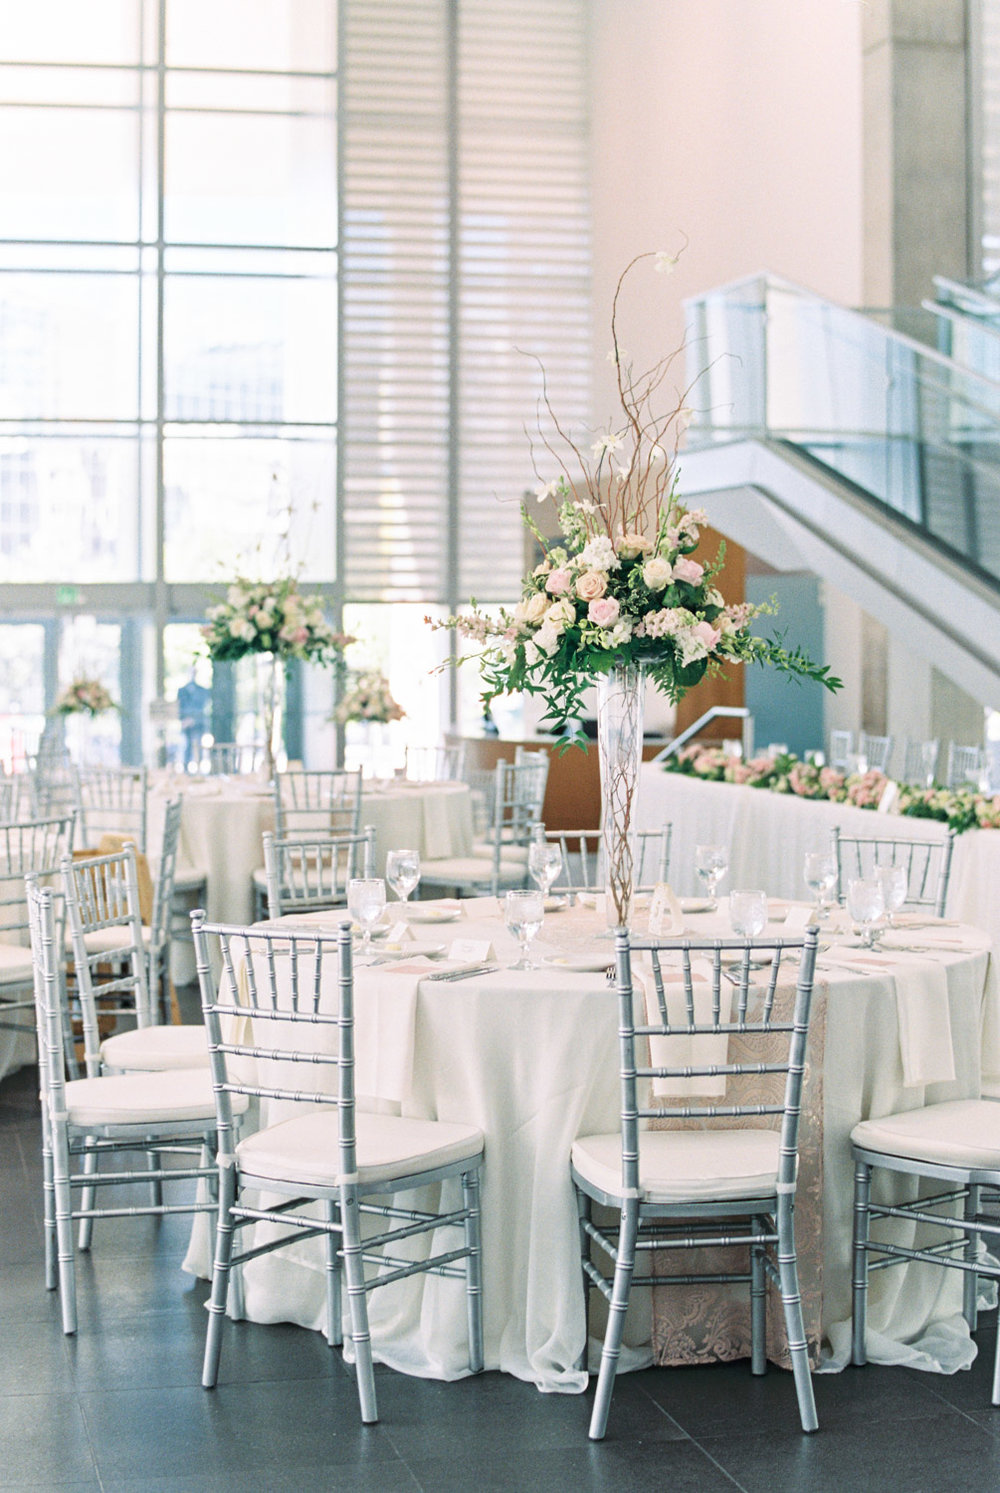 Grand Rapids Michigan Wedding by Michelle Lange Photography-48.jpg